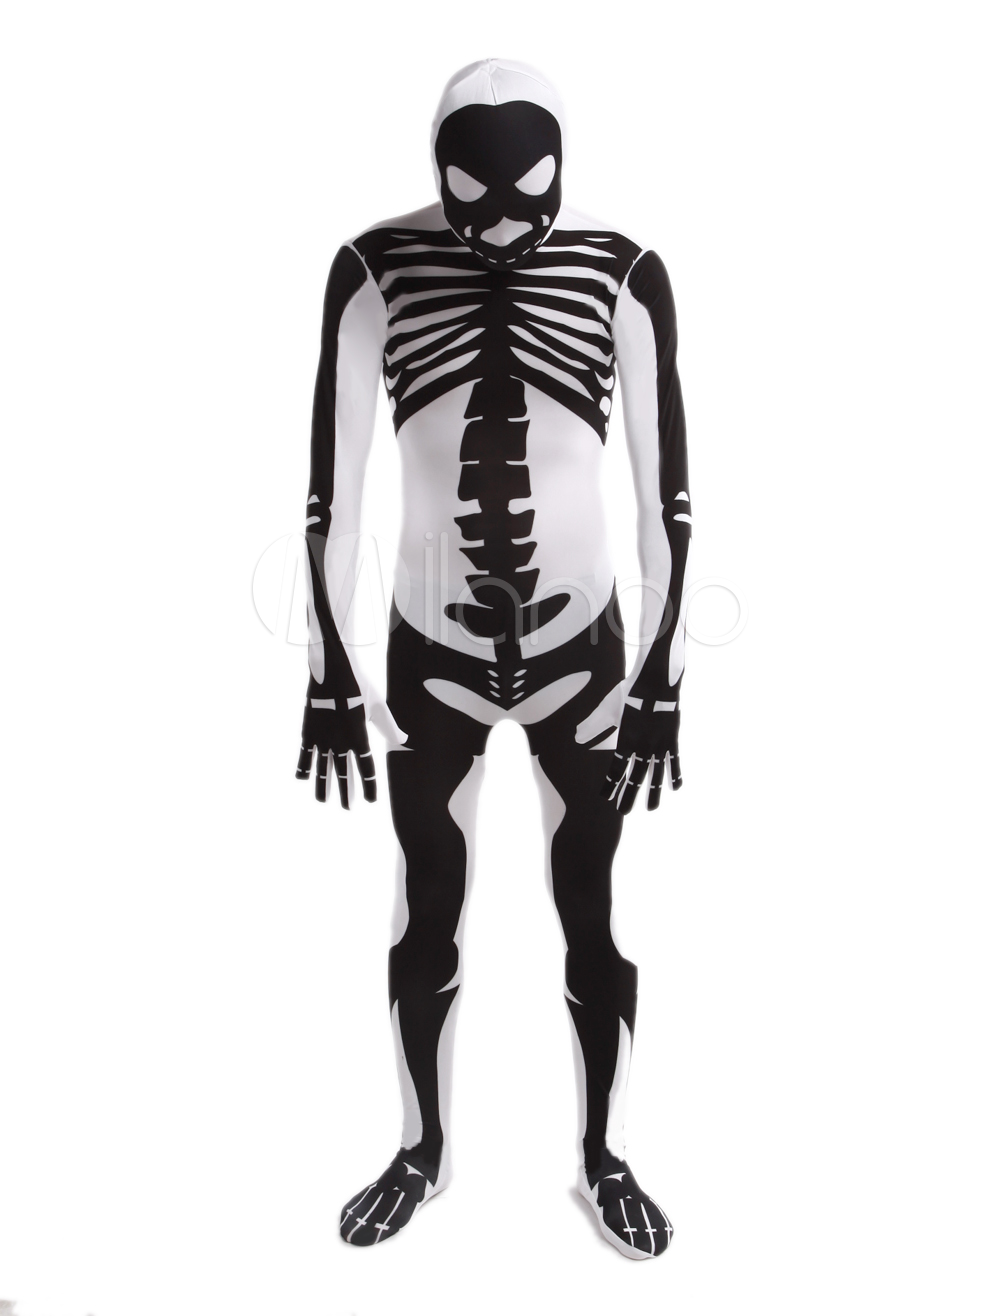 Buy White Human Skeleton Lycra Spandex Unisex Zentai Suit Halloween cosplay costume Halloween for $58.89 in Milanoo store